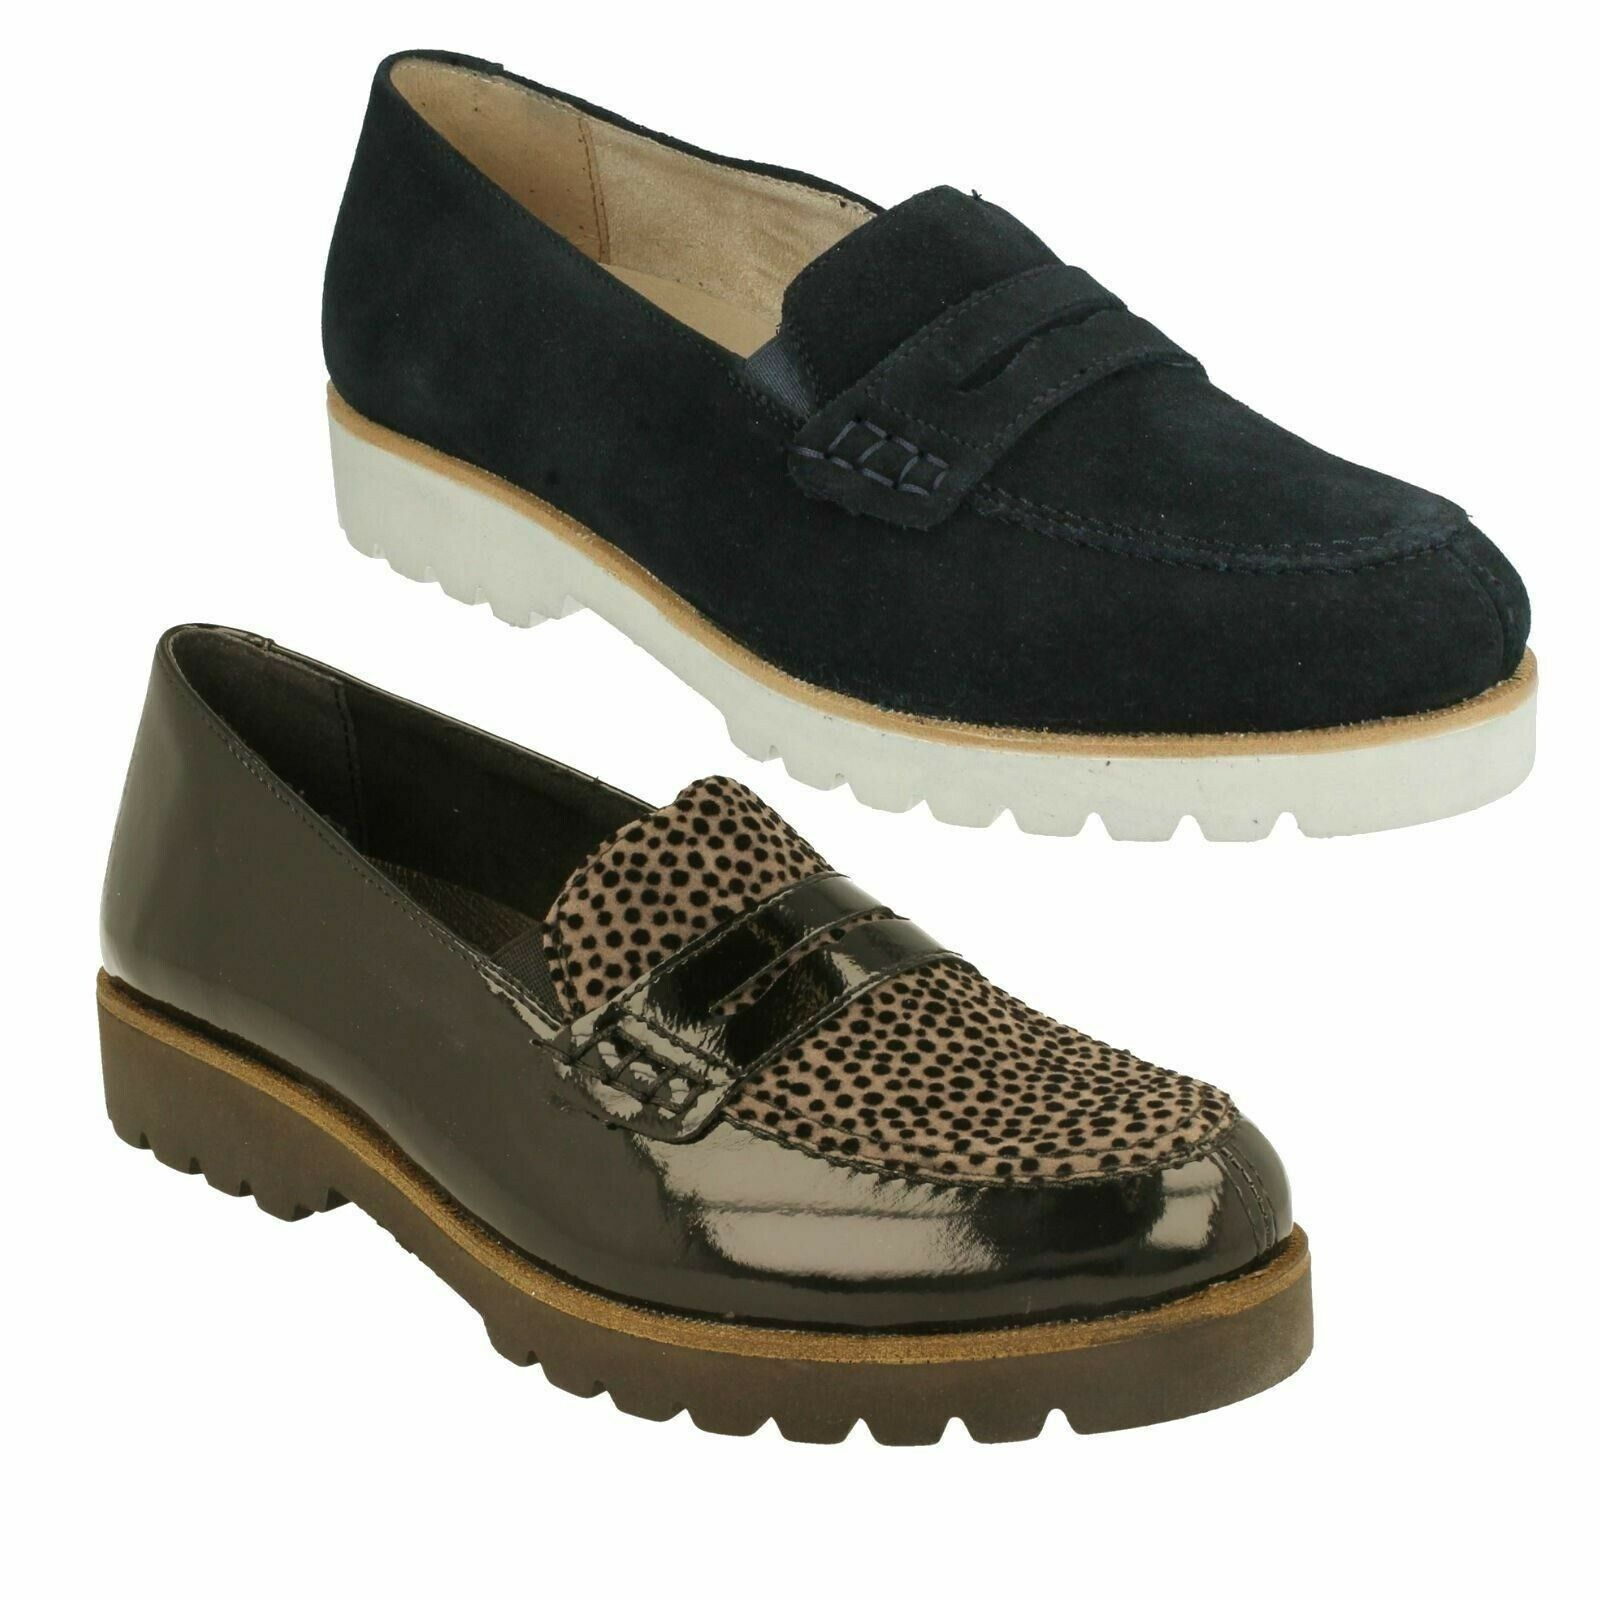 REMONTE D0101 LADIES SLIP ON CASUAL FLAT LEATHER SMART